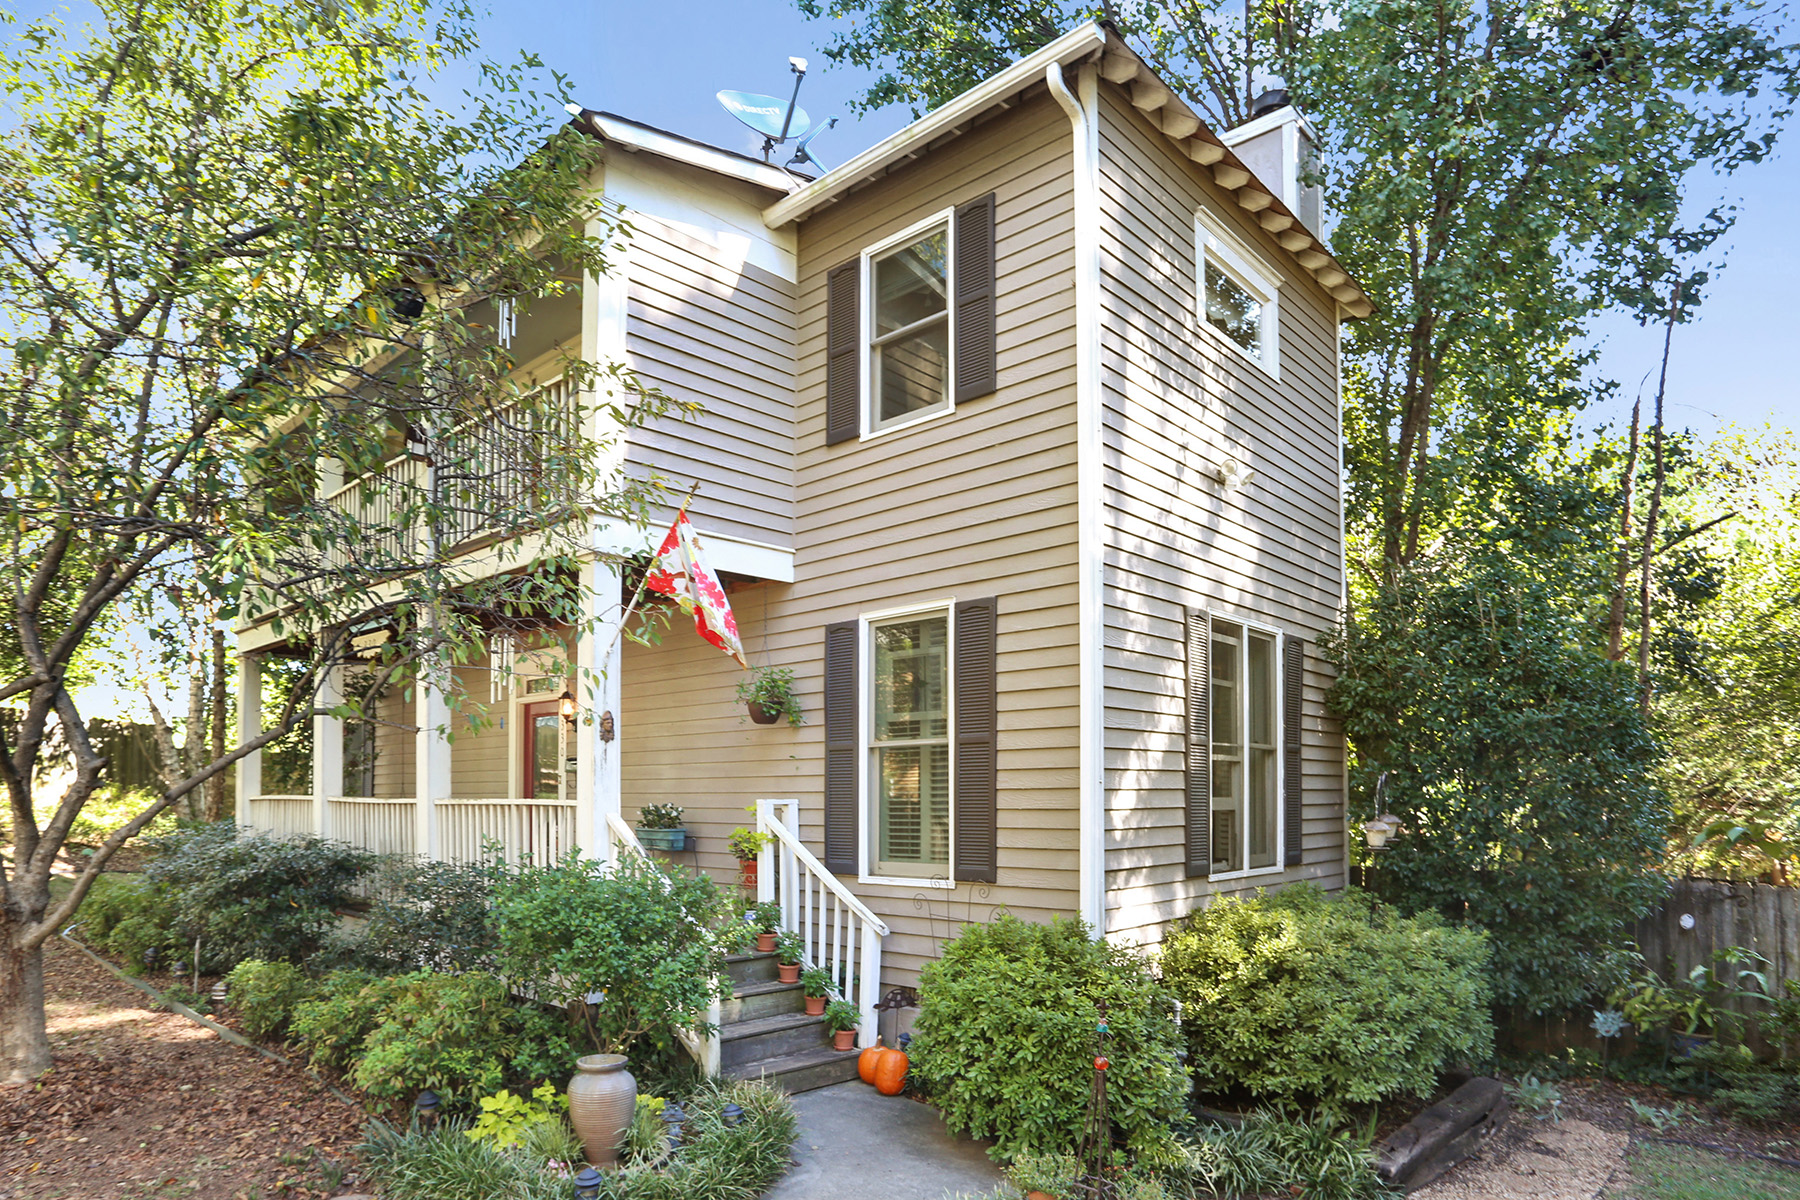 Single Family Home for Sale at Charming Two-Story In Fantastic Grant Park Location! 330 Grant St Atlanta, Georgia 30305 United States